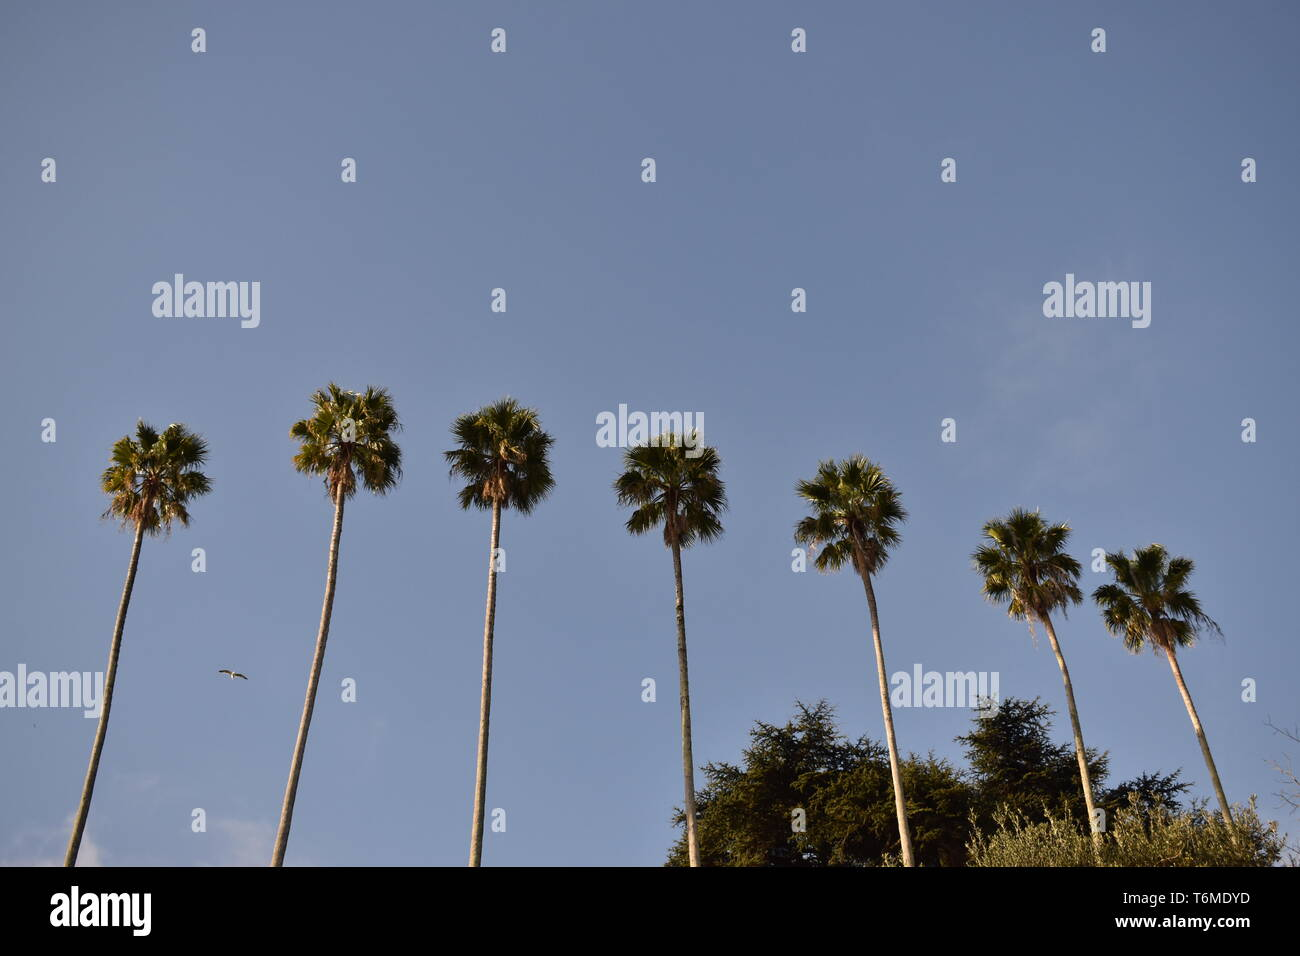 A sequence of palm trees seen from below. Stock Photo